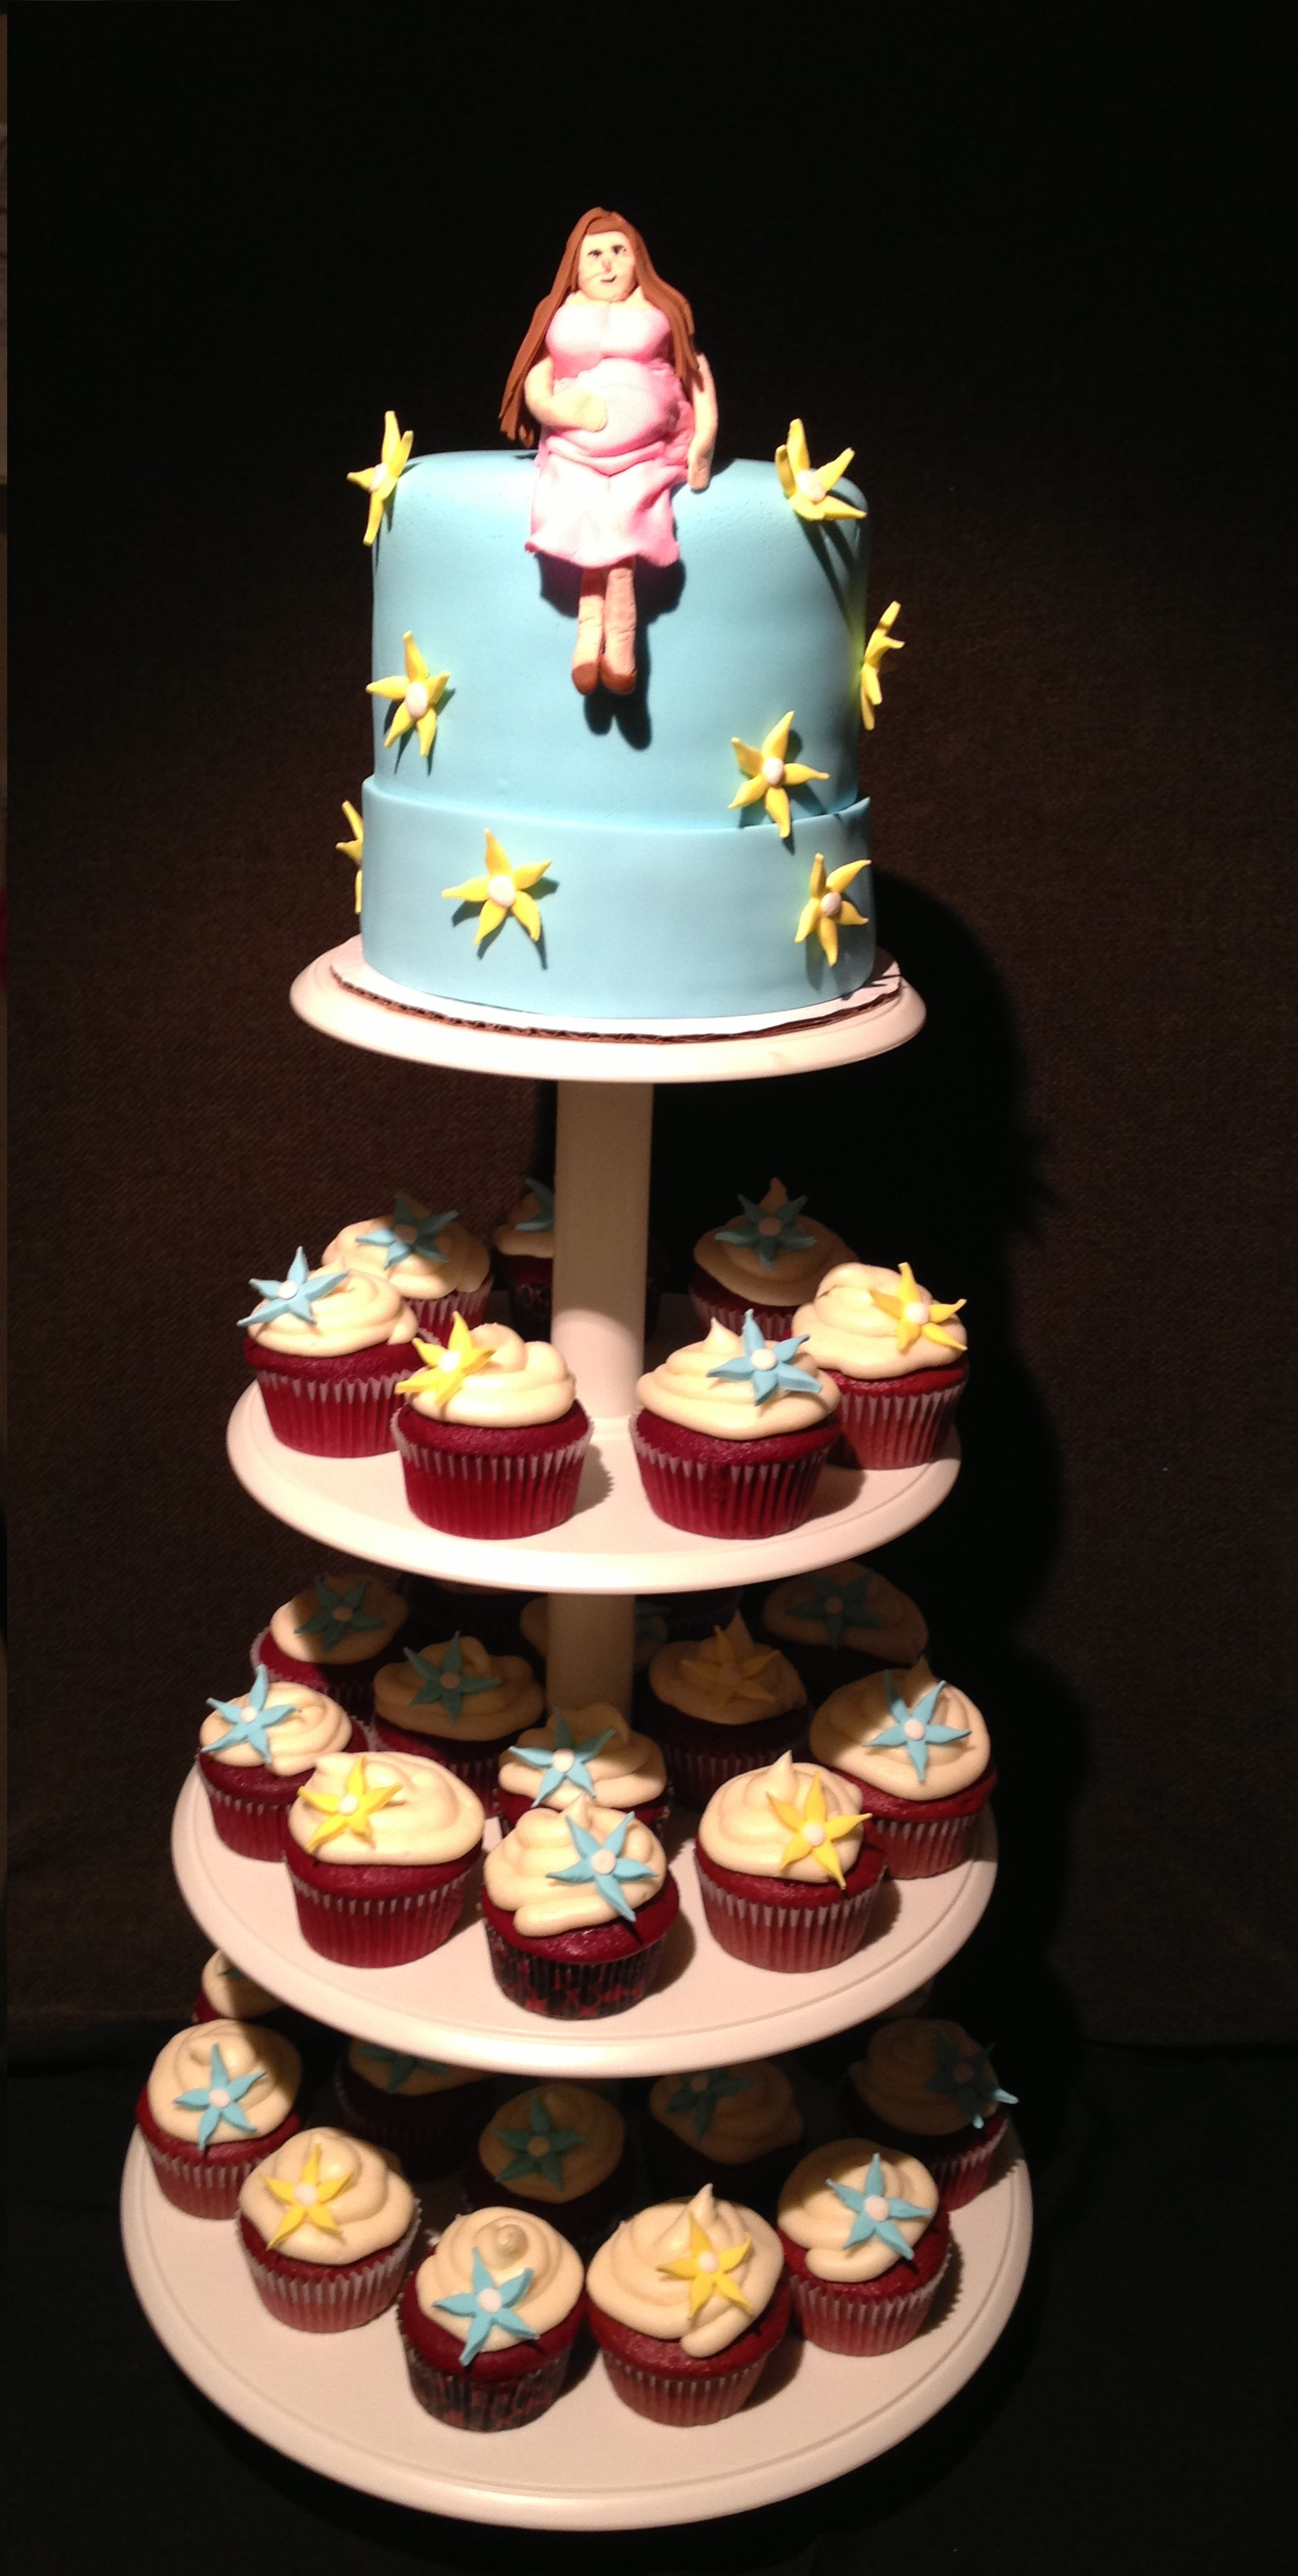 Ideas For Baby Shower Cakes Or Cupcakes : CUPCAKE TOWER - For childrens